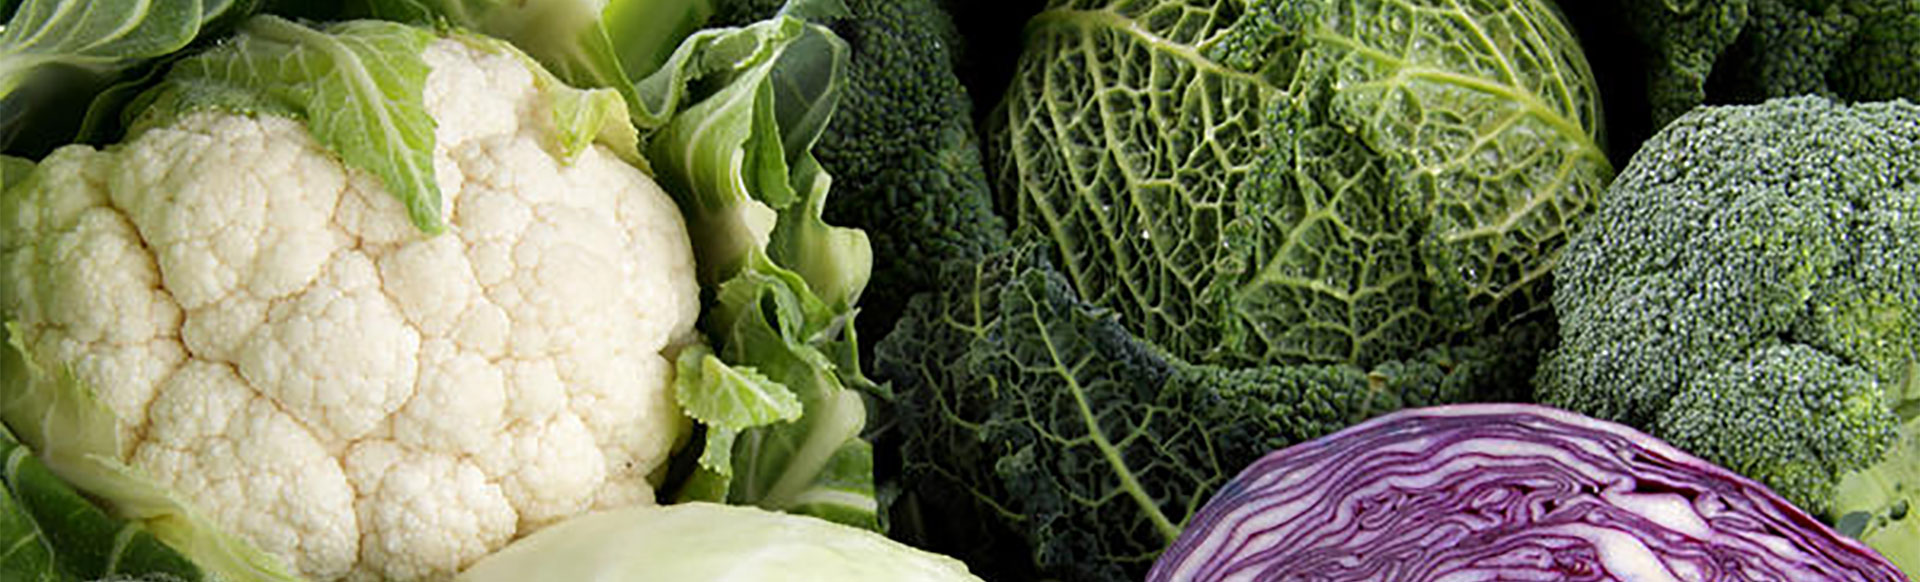 vegetables-header